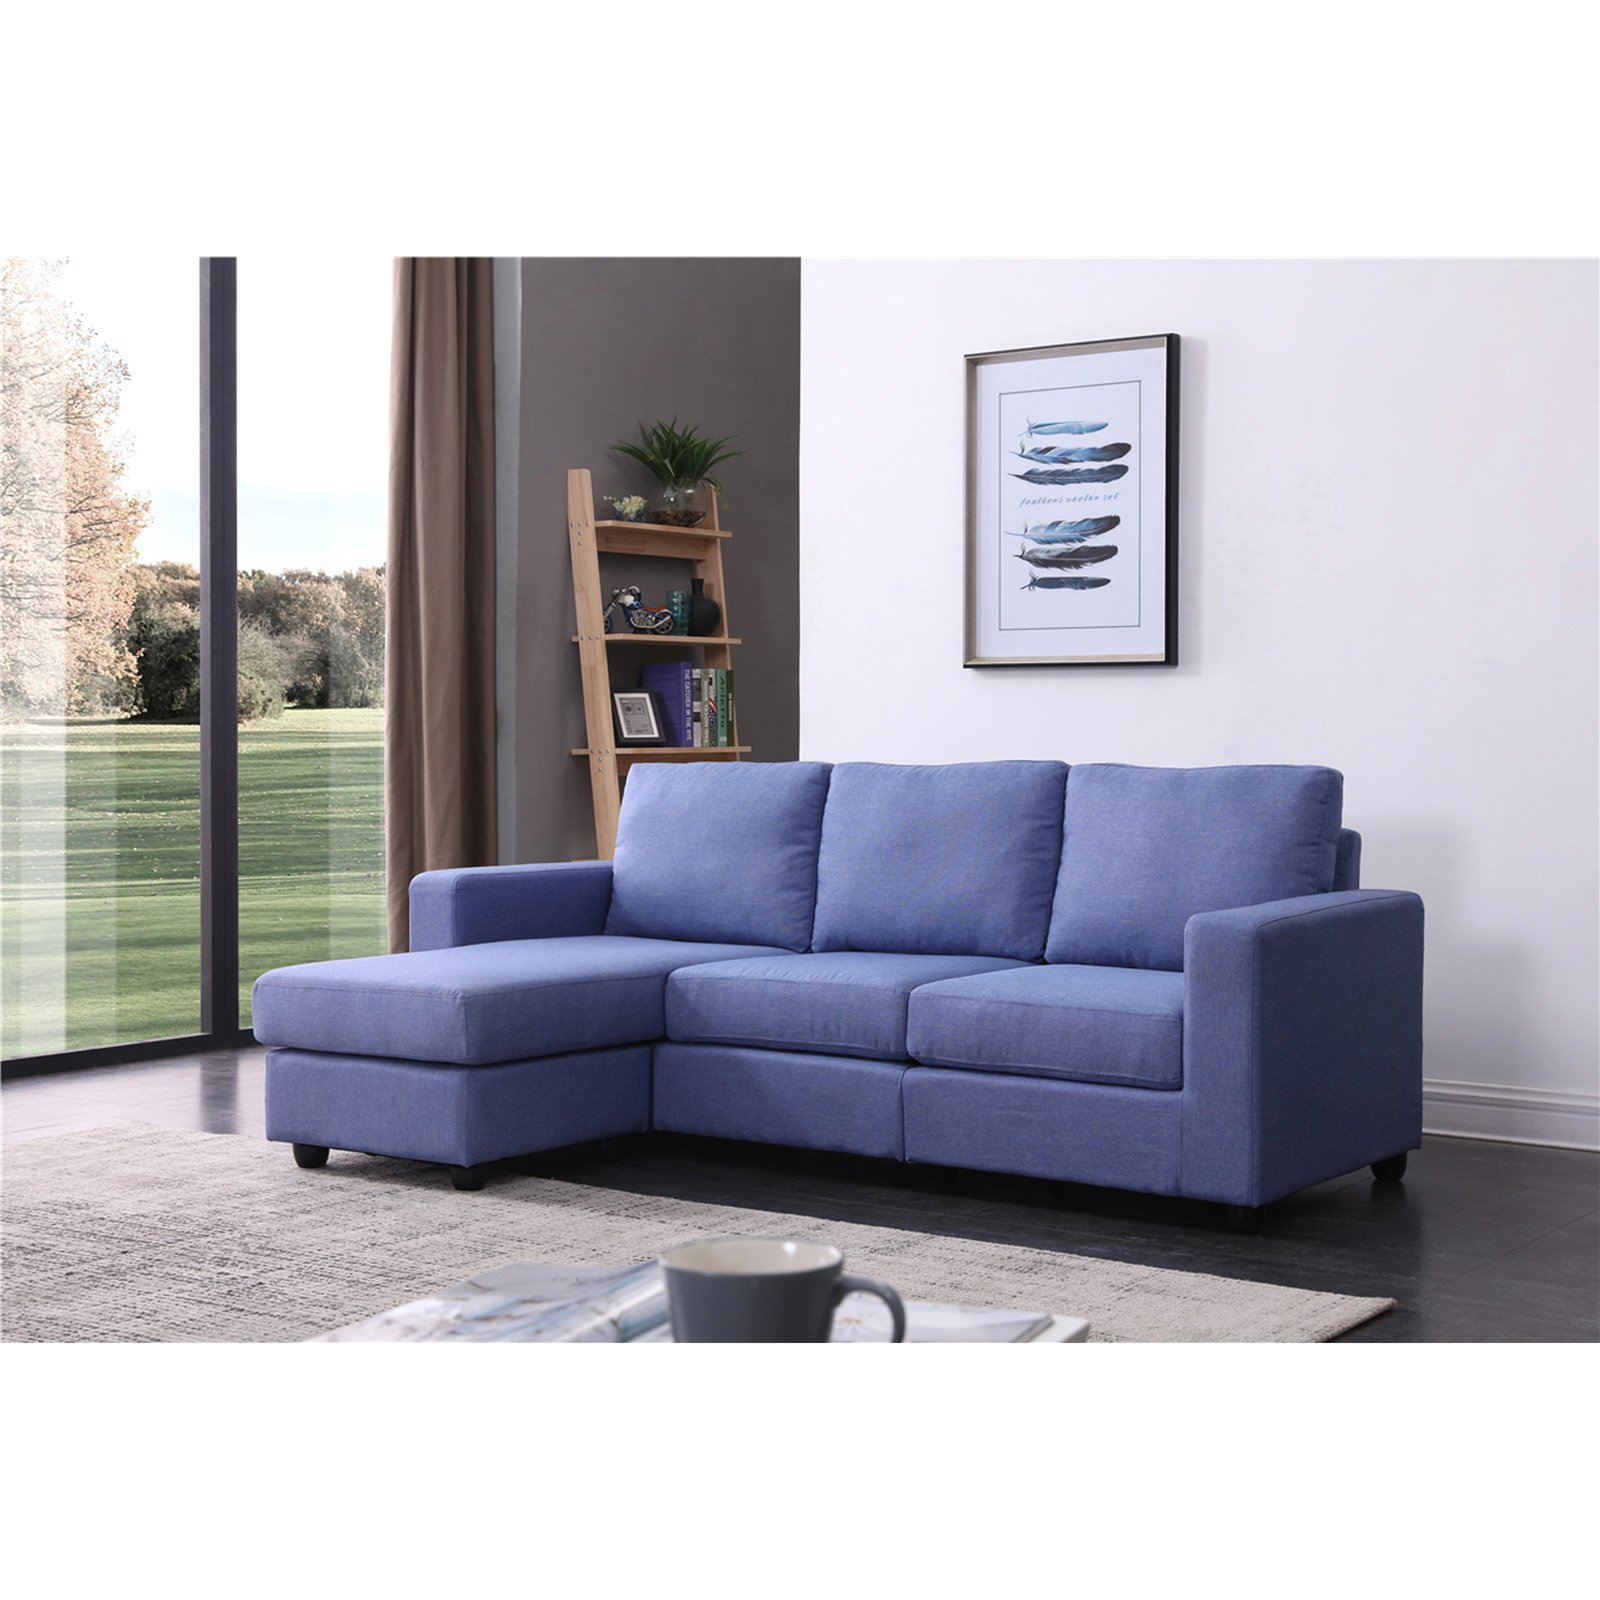 NH Designs Convertible Sectional